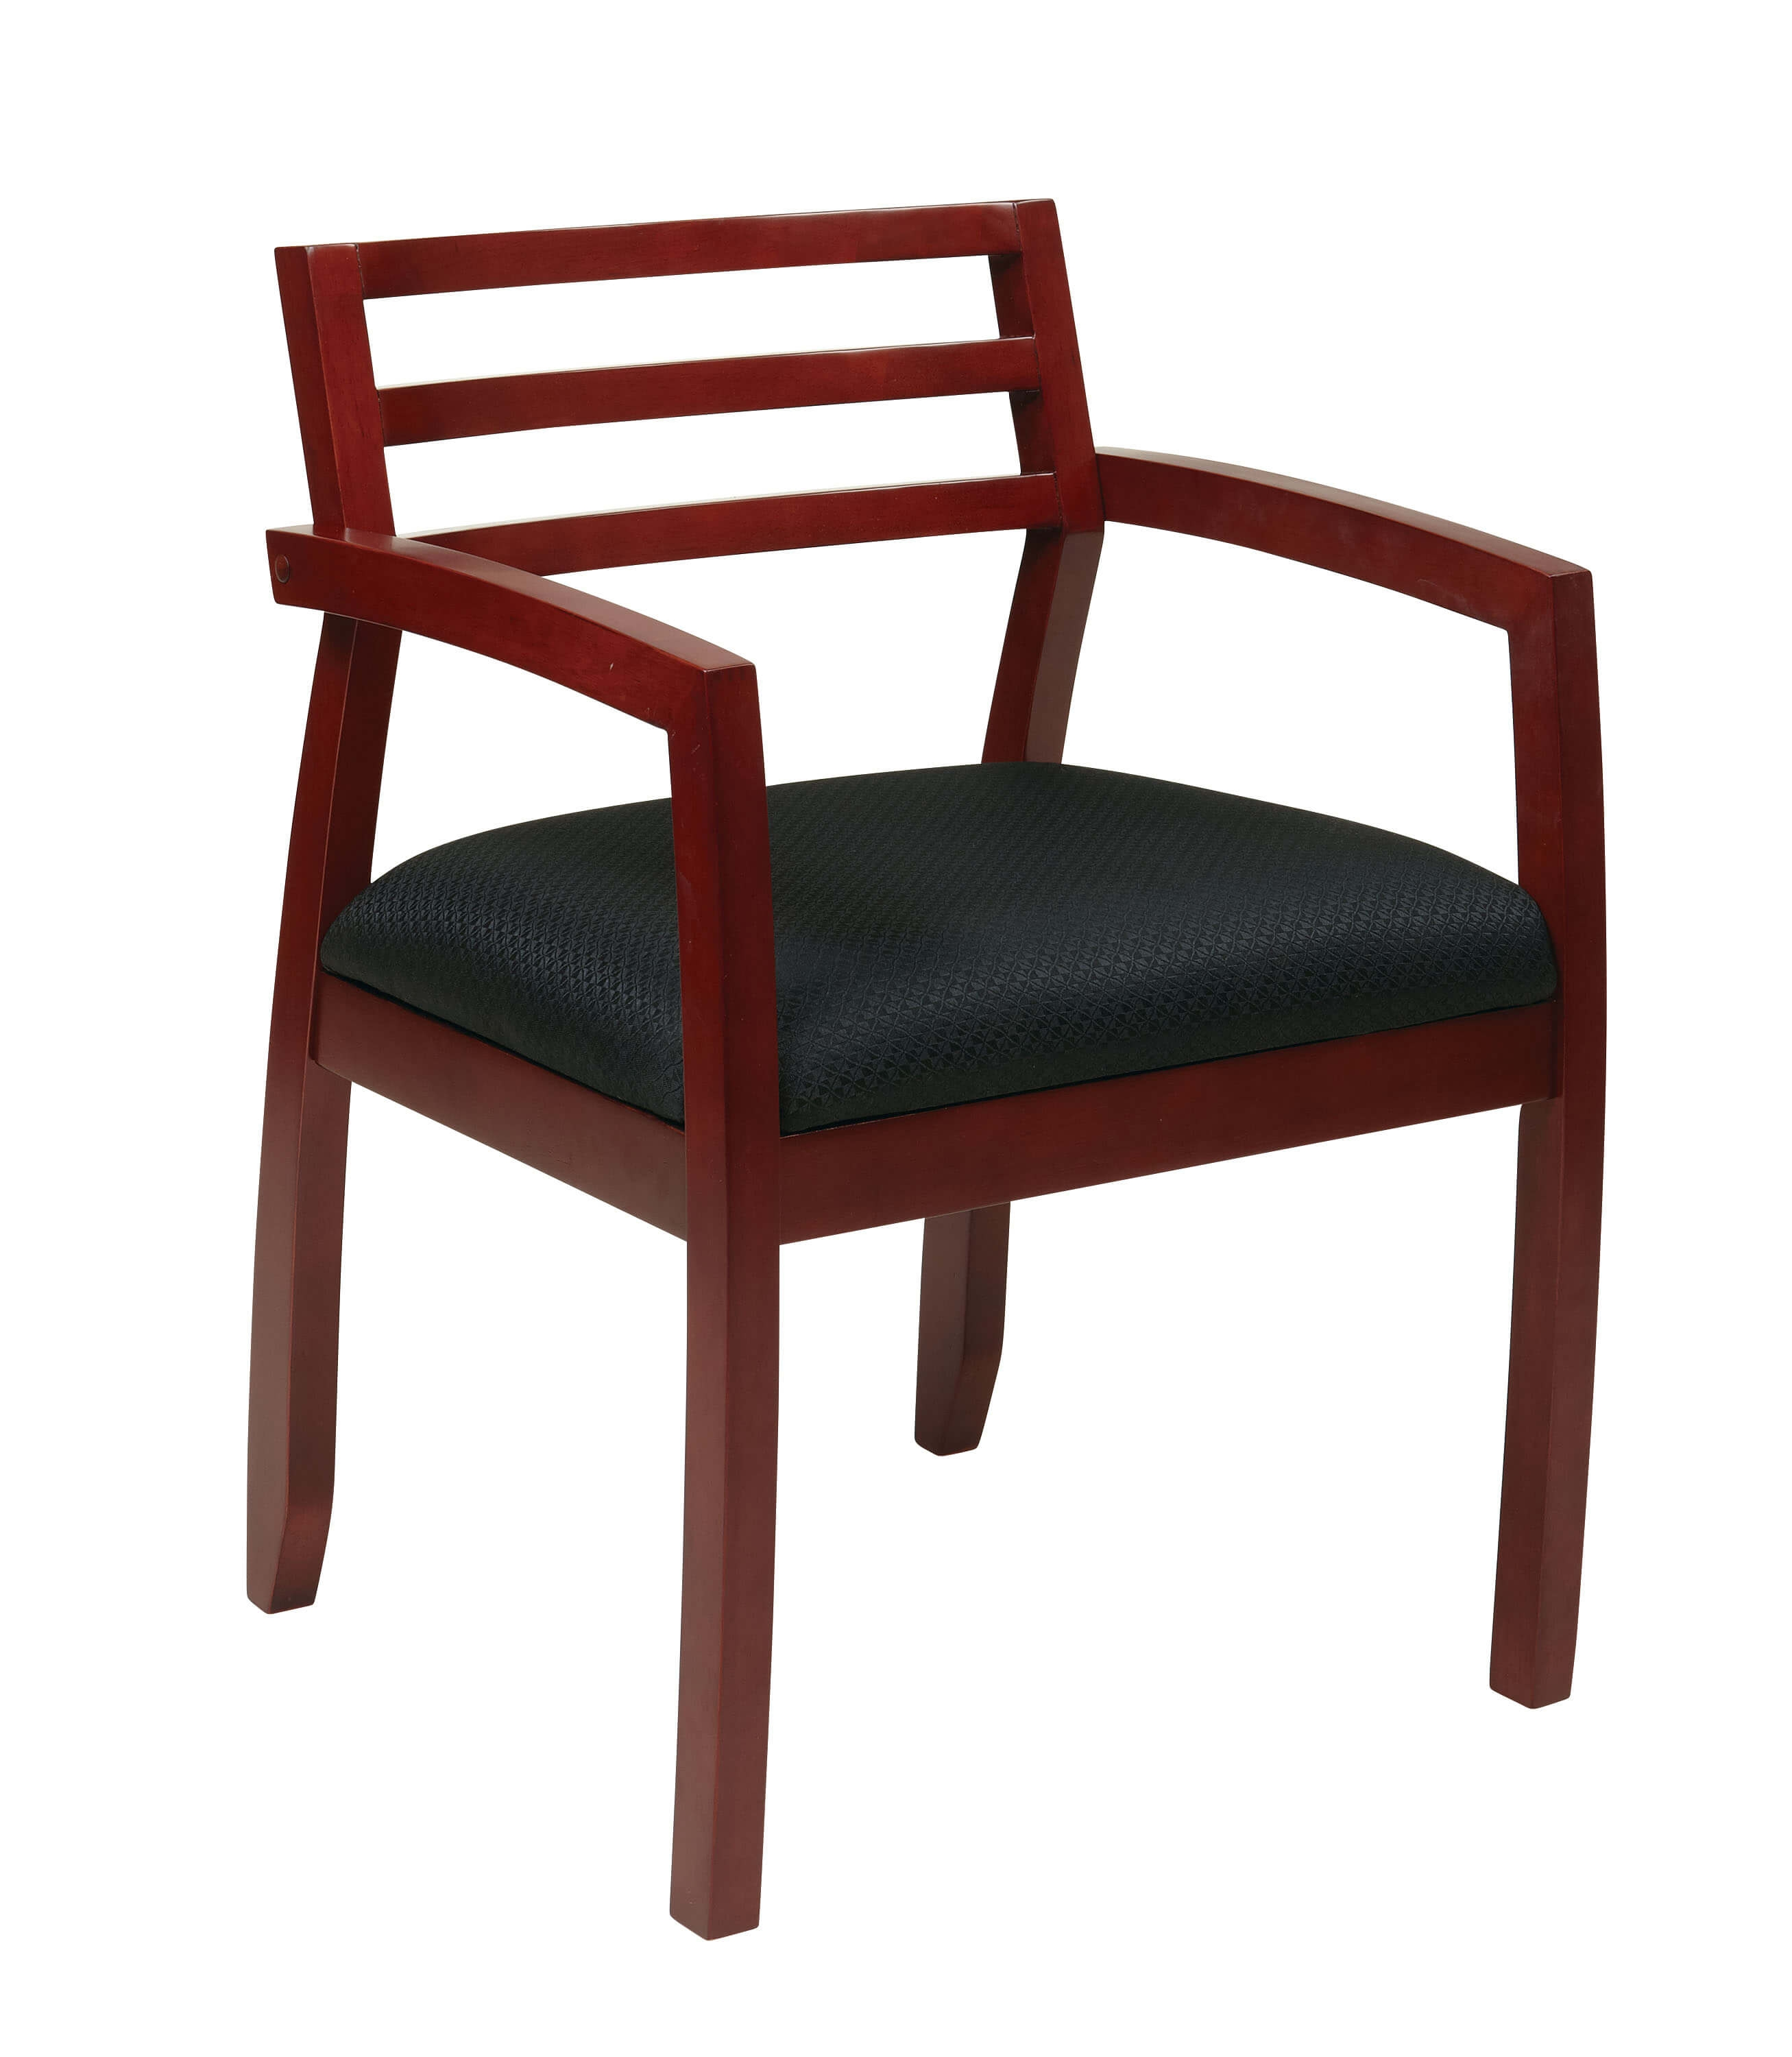 Side chairs with arms CUB NAP91CHY 3 PSO